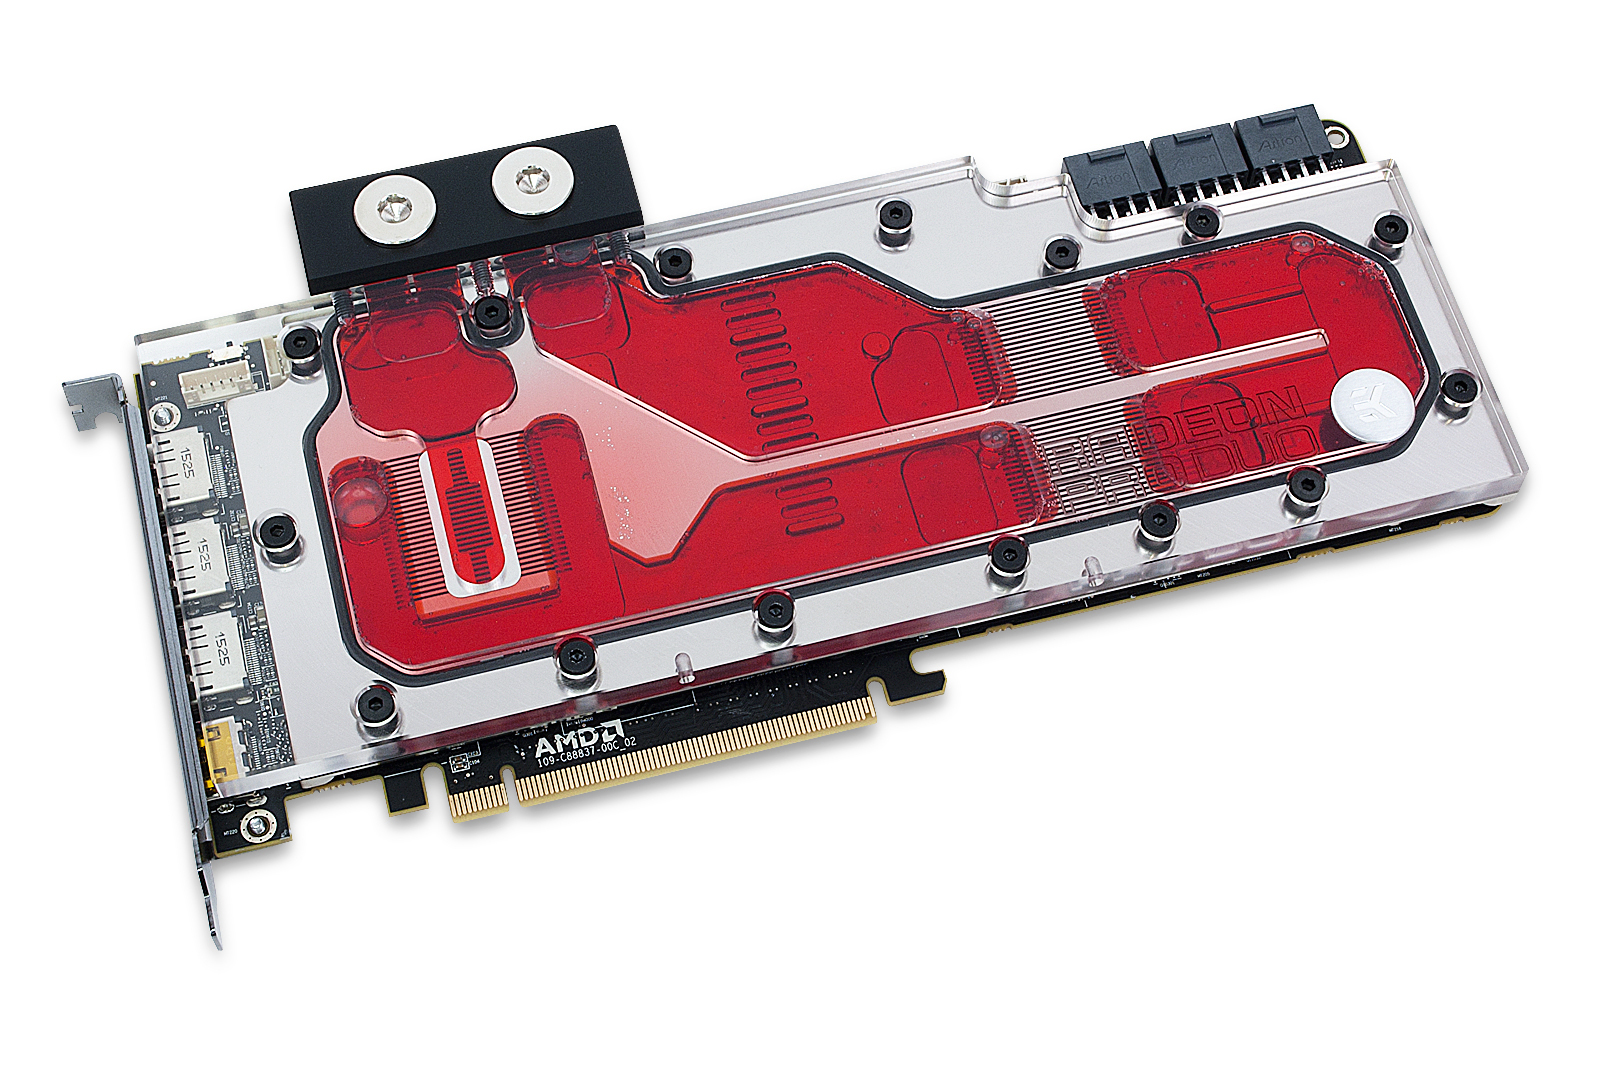 EK releases AMD® RADEON™ Pro Duo Full-Cover water block